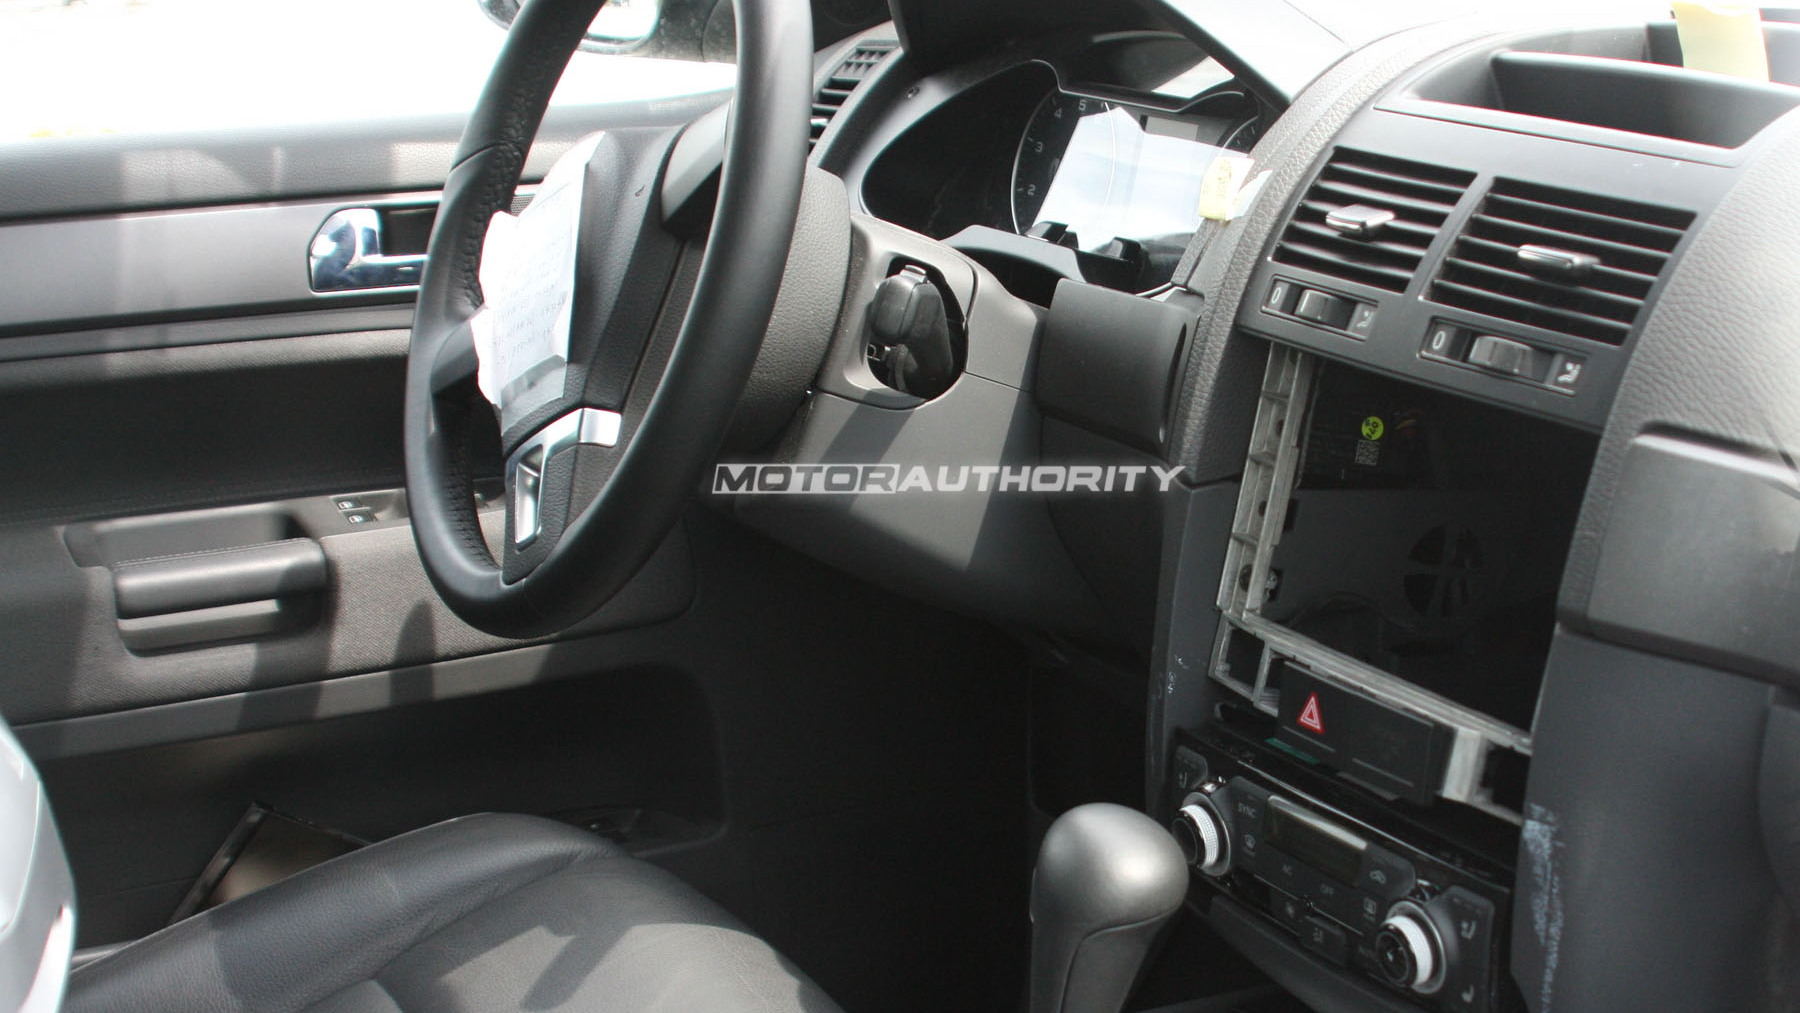 2011 volkswagen touareg test mule spy shots may 007